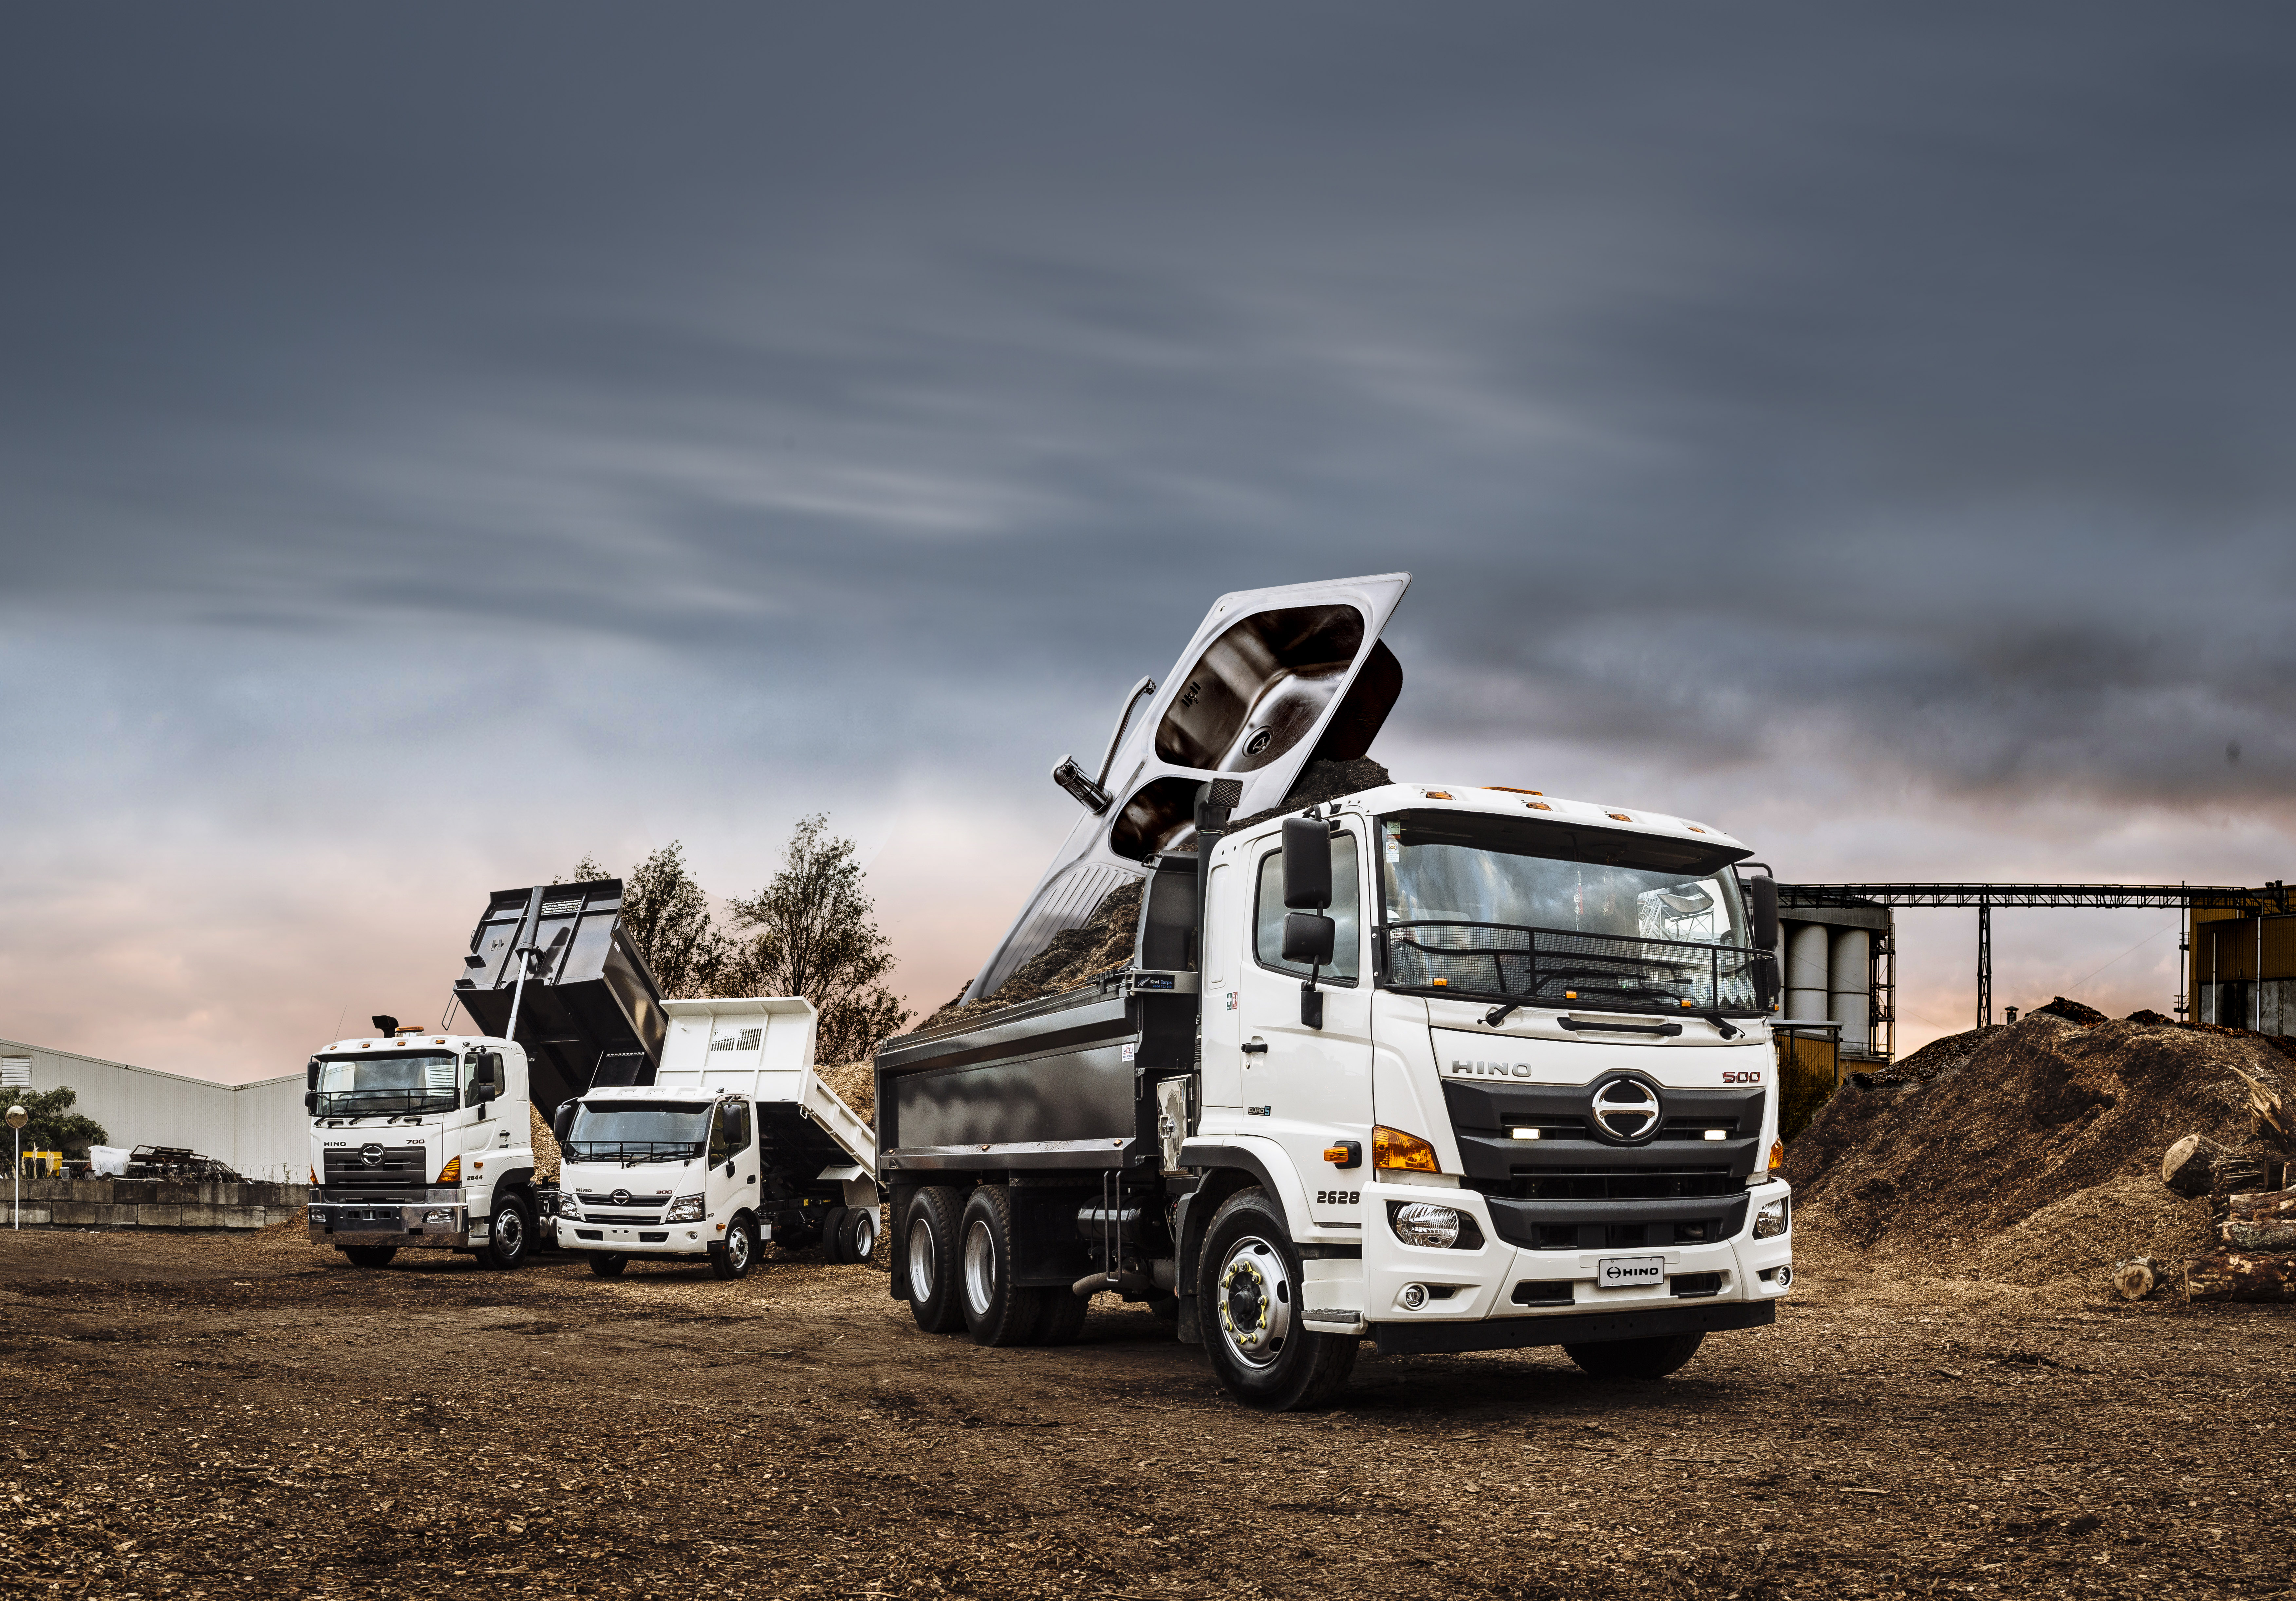 500 Series Tipper comes with everything including the Kitchen Sink!